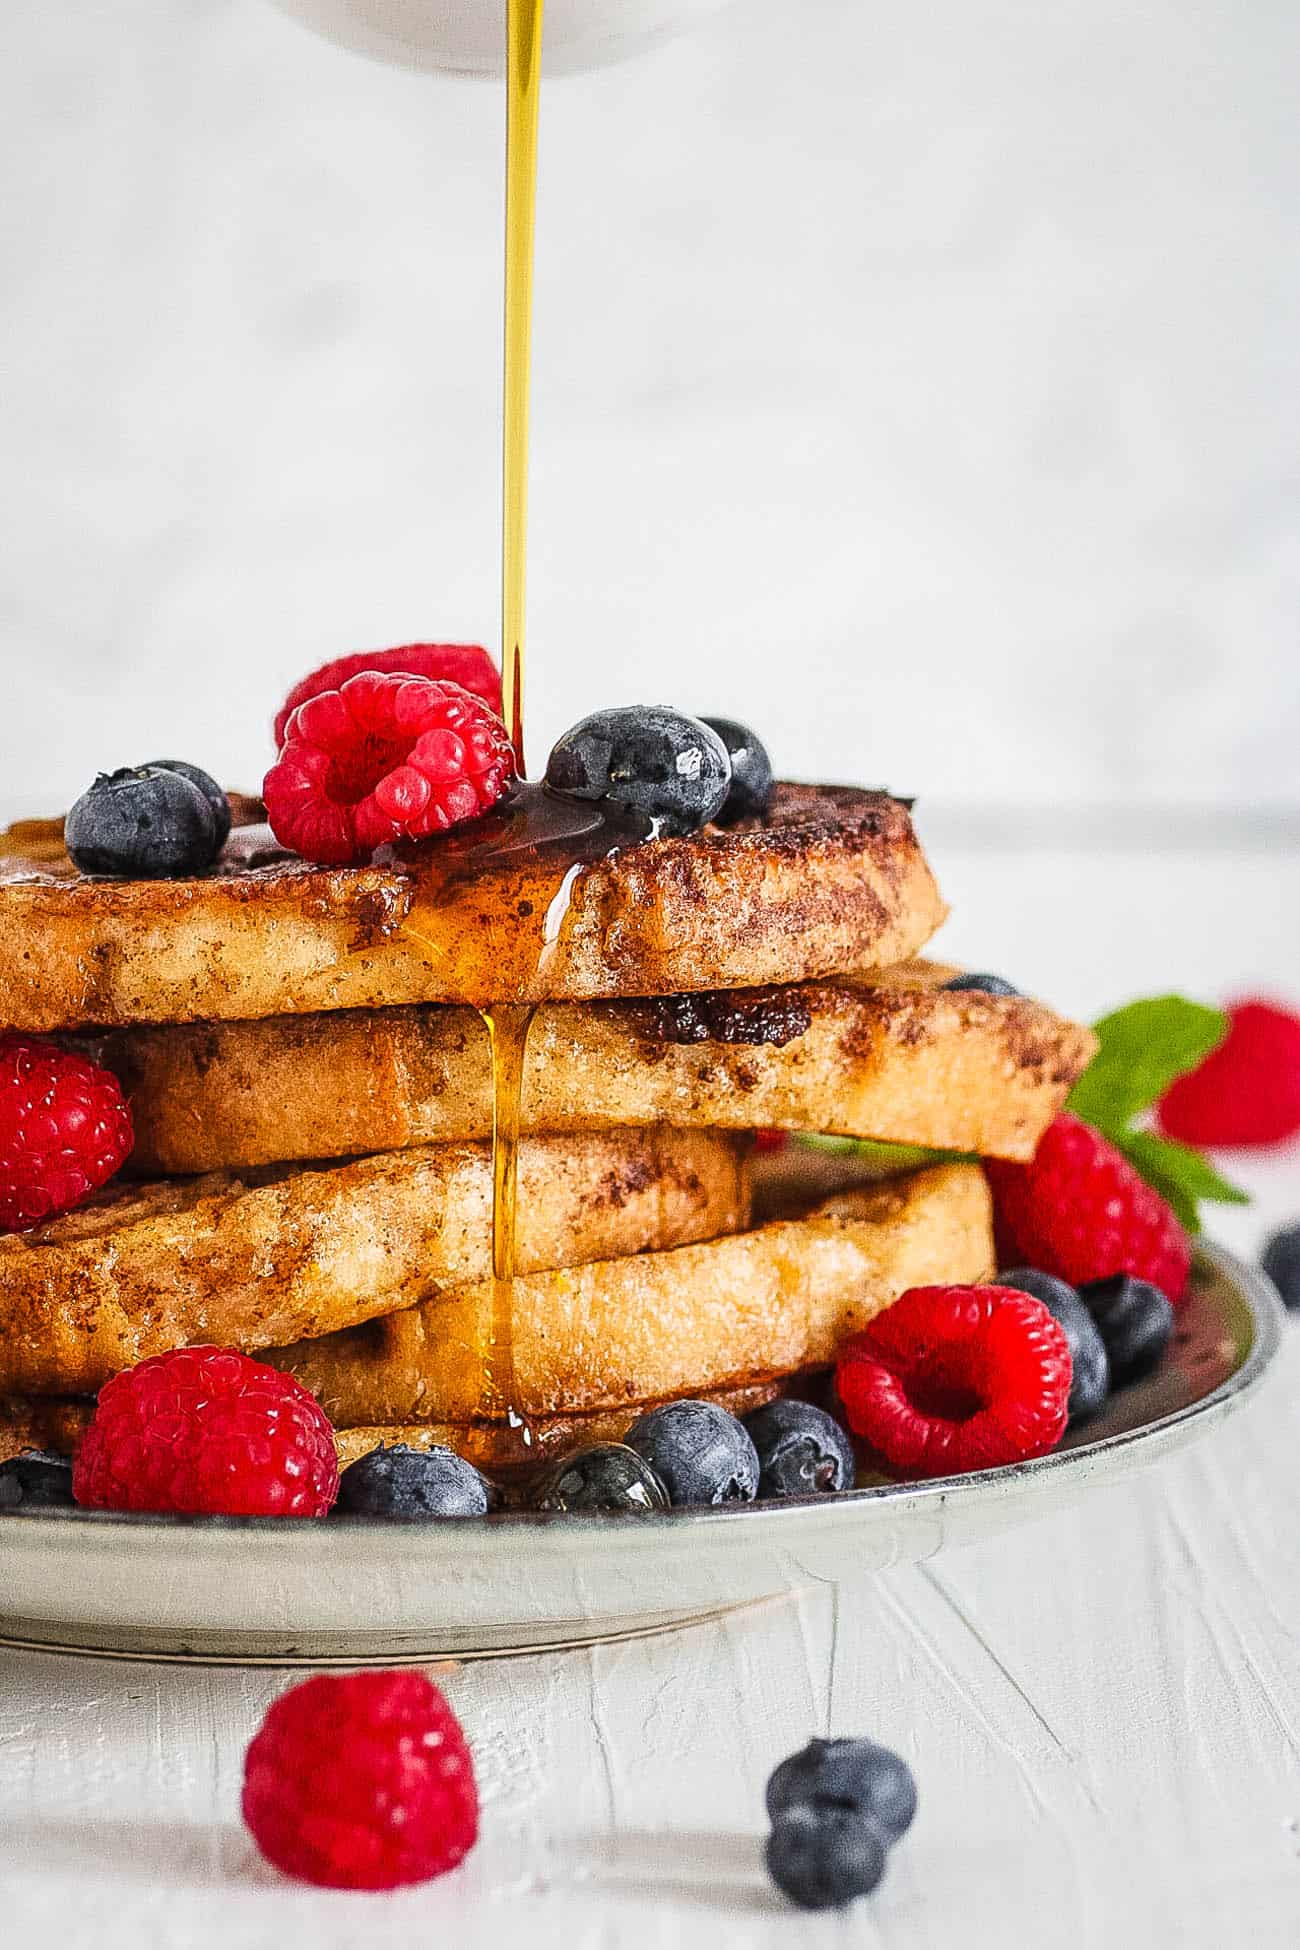 quick healthy french toast with berries and syrup served on a white plate